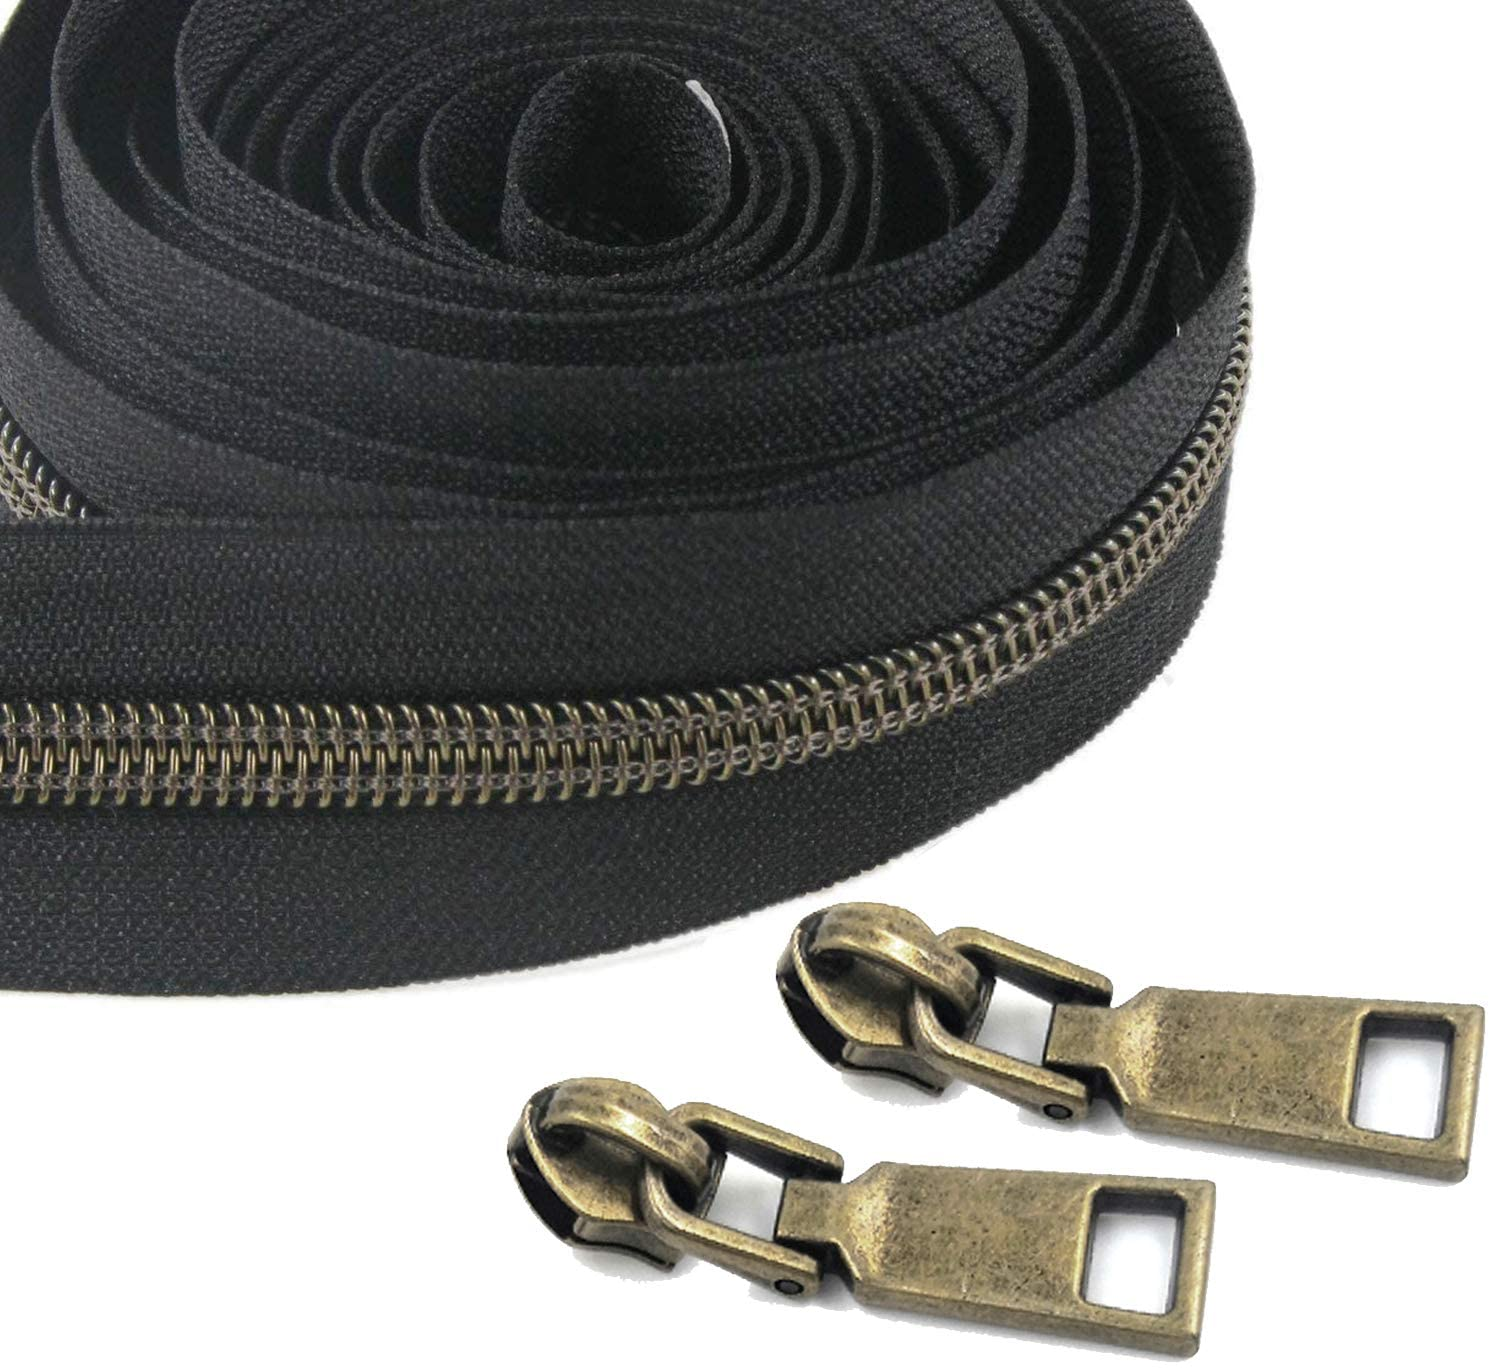 SBest Nylon Zippers #5 10 Yards Sewing Zippers Bulk DIY Zipper by The Yard Bulk with 20PCS Slider-Long Zippers for Tailor Sewing Crafts Bag (Anti-Brass Teeth Black Tape)